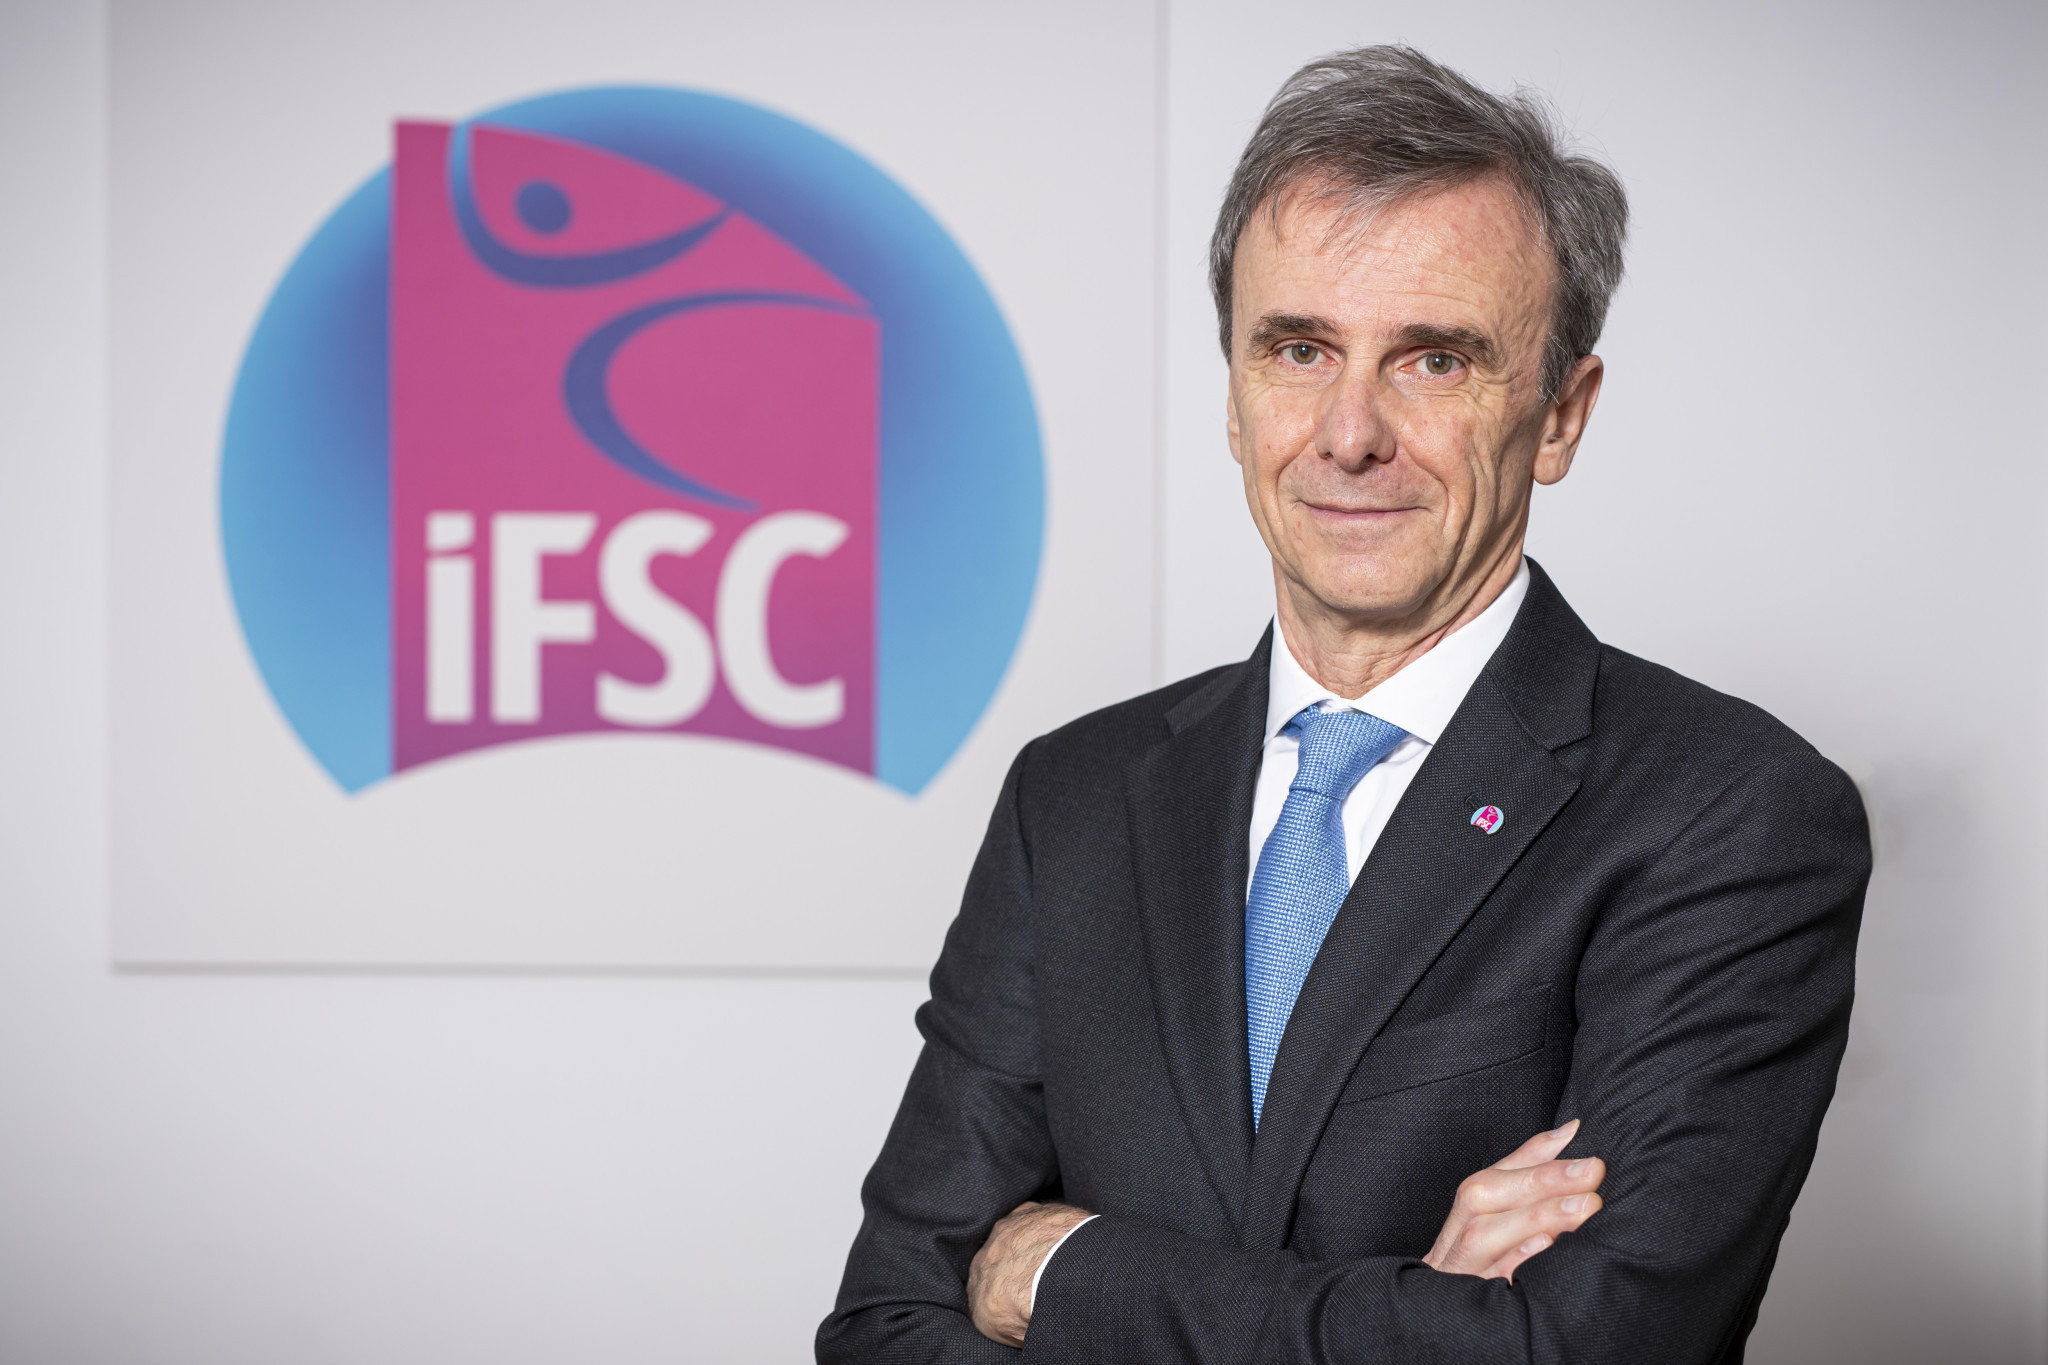 Scolaris secures another term as IFSC President after re-election at General Assembly